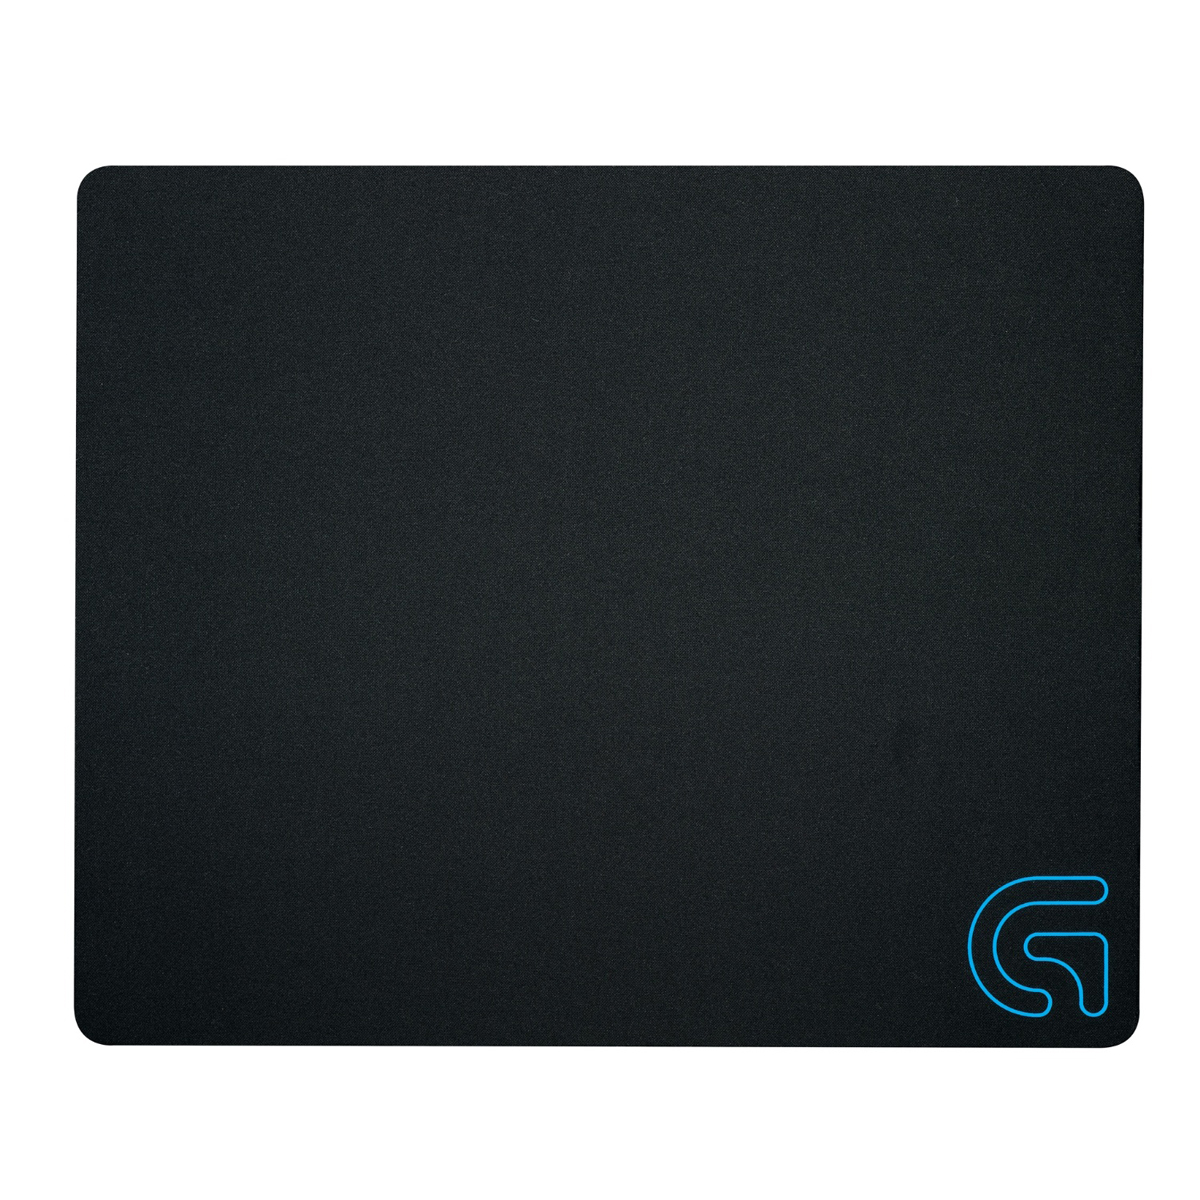 logitech g240 cloth gaming mouse pad tapis de souris. Black Bedroom Furniture Sets. Home Design Ideas